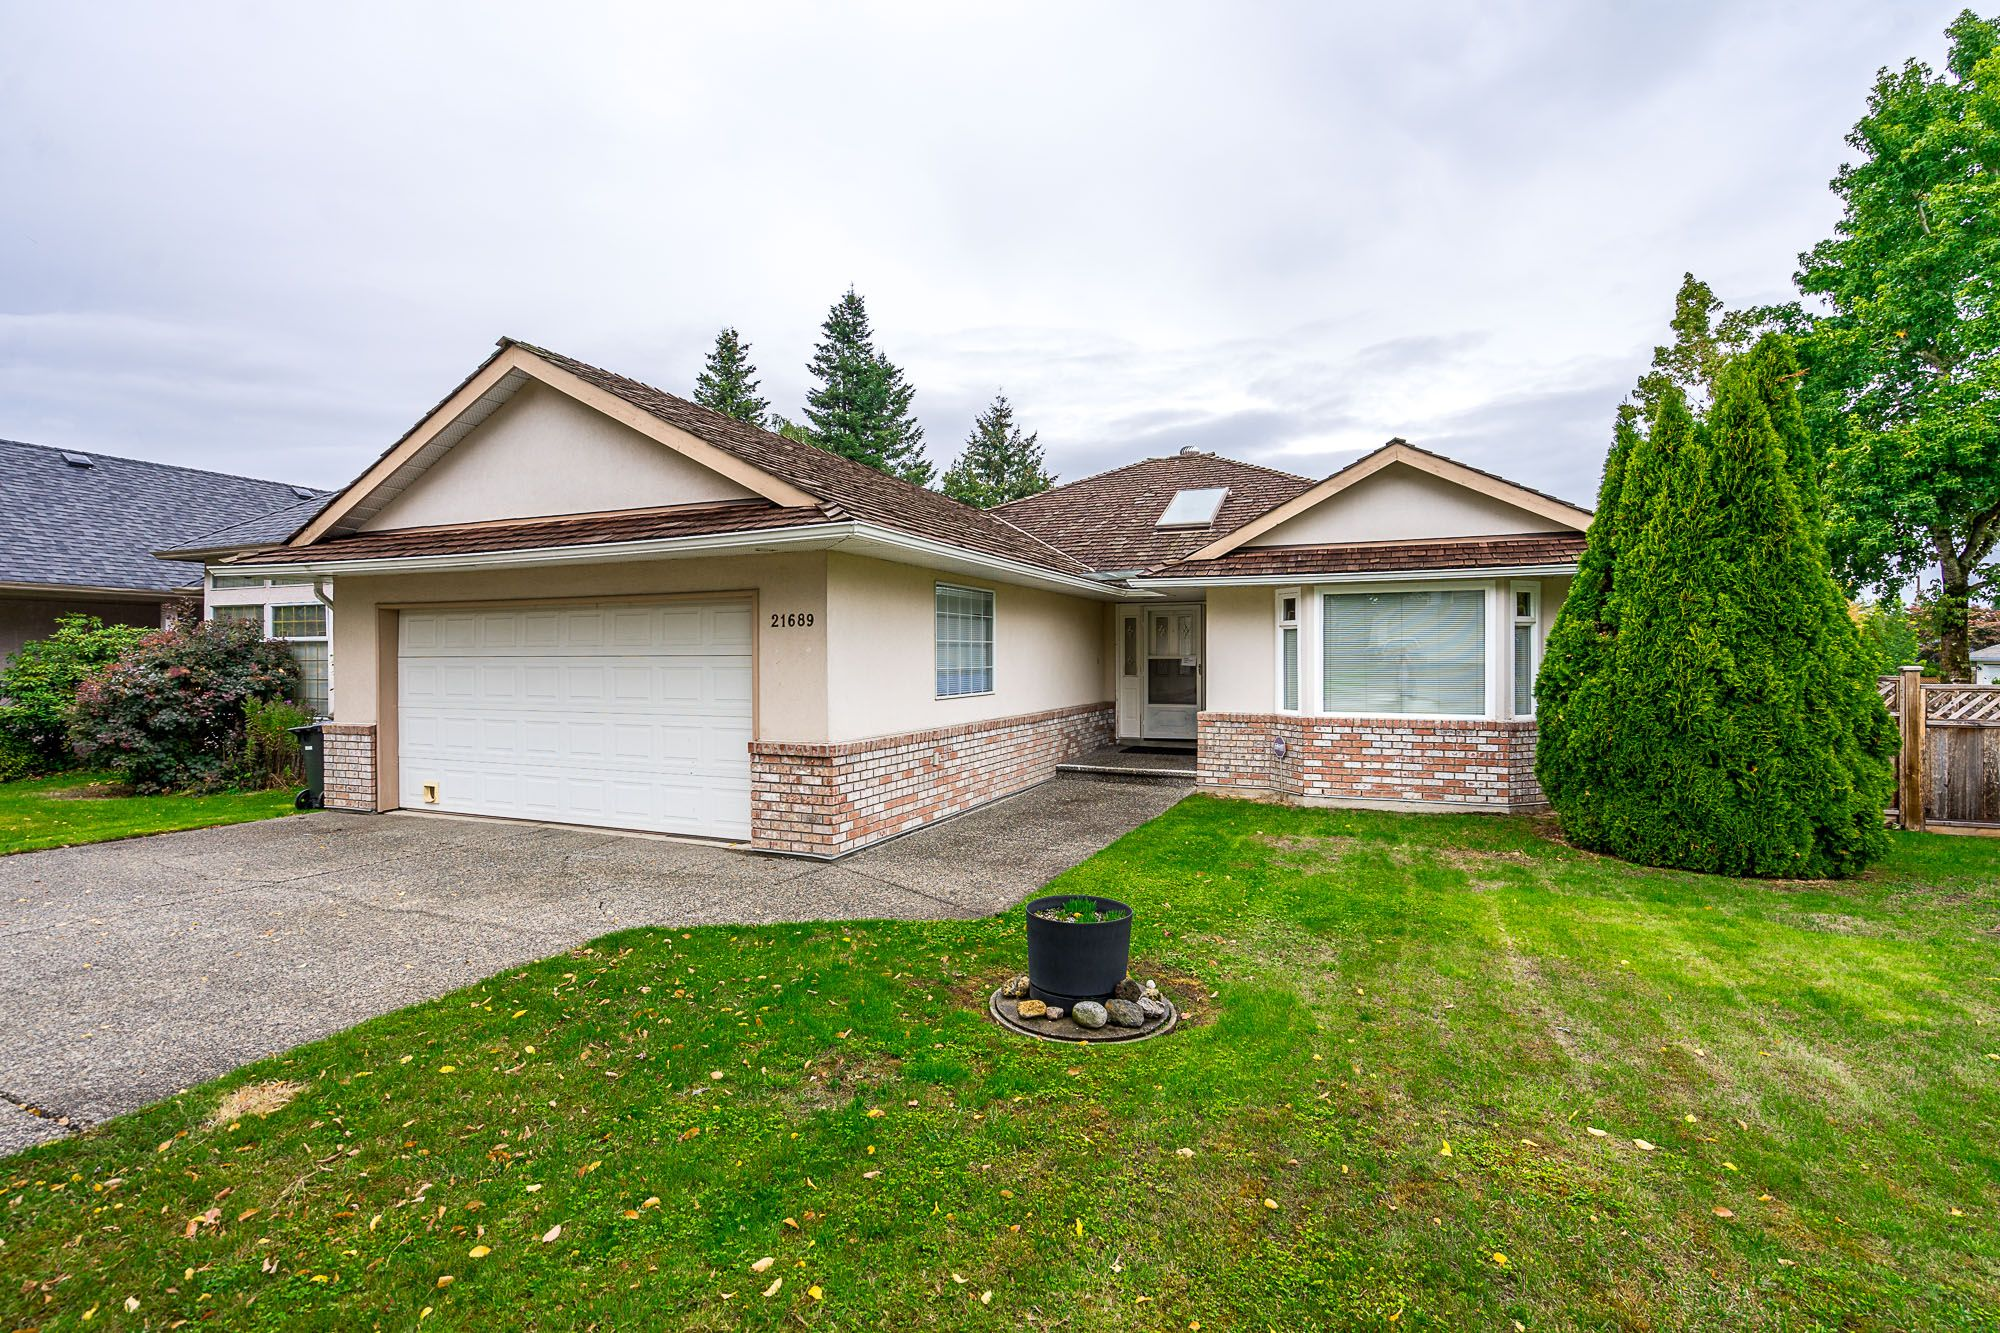 Main Photo: 21689 45 Avenue in Langley: Murrayville House for sale : MLS®# R2319292